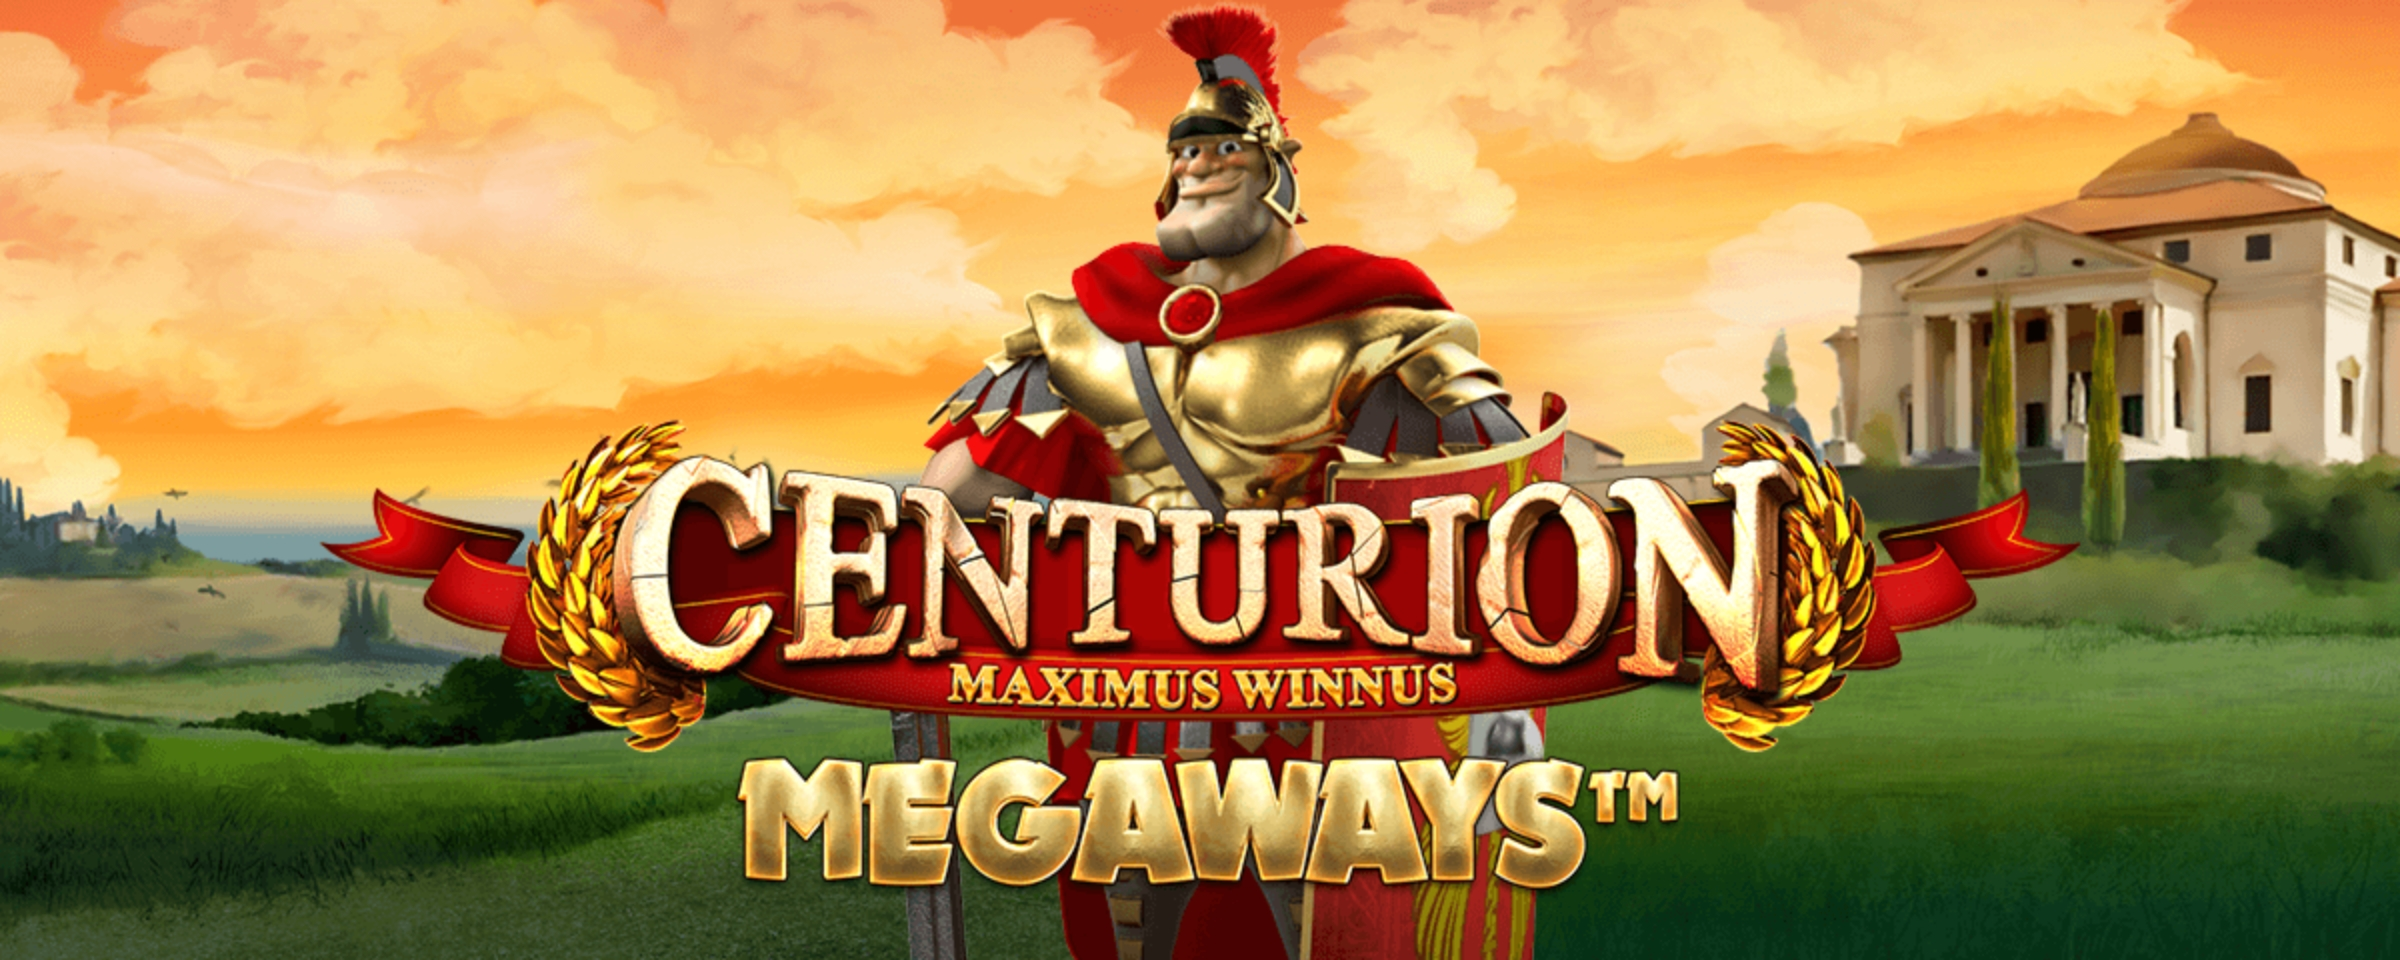 The Centurion Megaways Online Slot Demo Game by Inspired Gaming